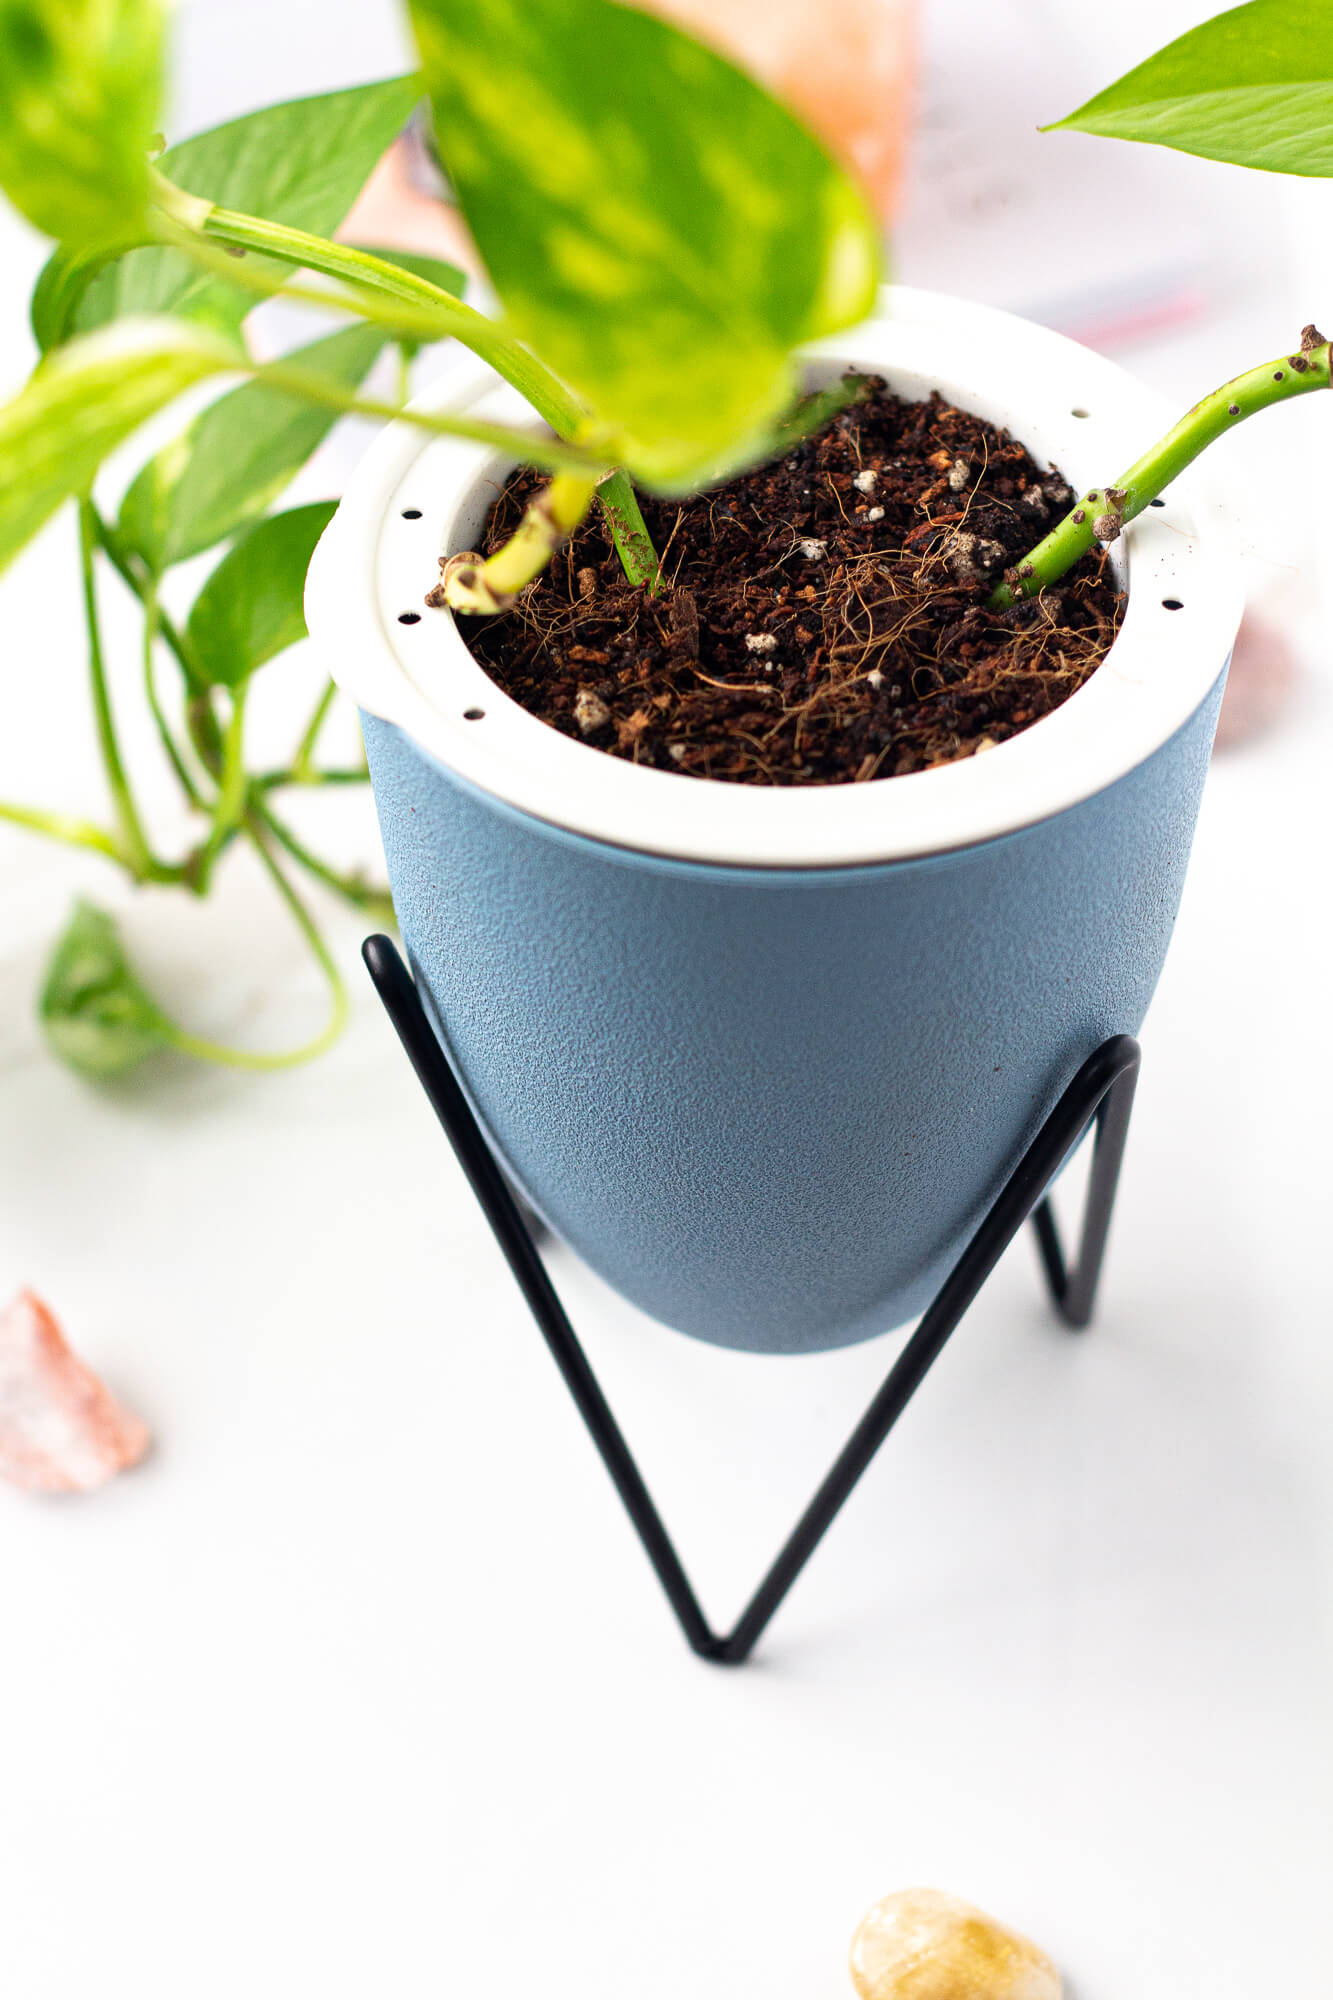 Indoor Self Watering Planter with Soil and Coconut Coir Blue/Green - House of Aster